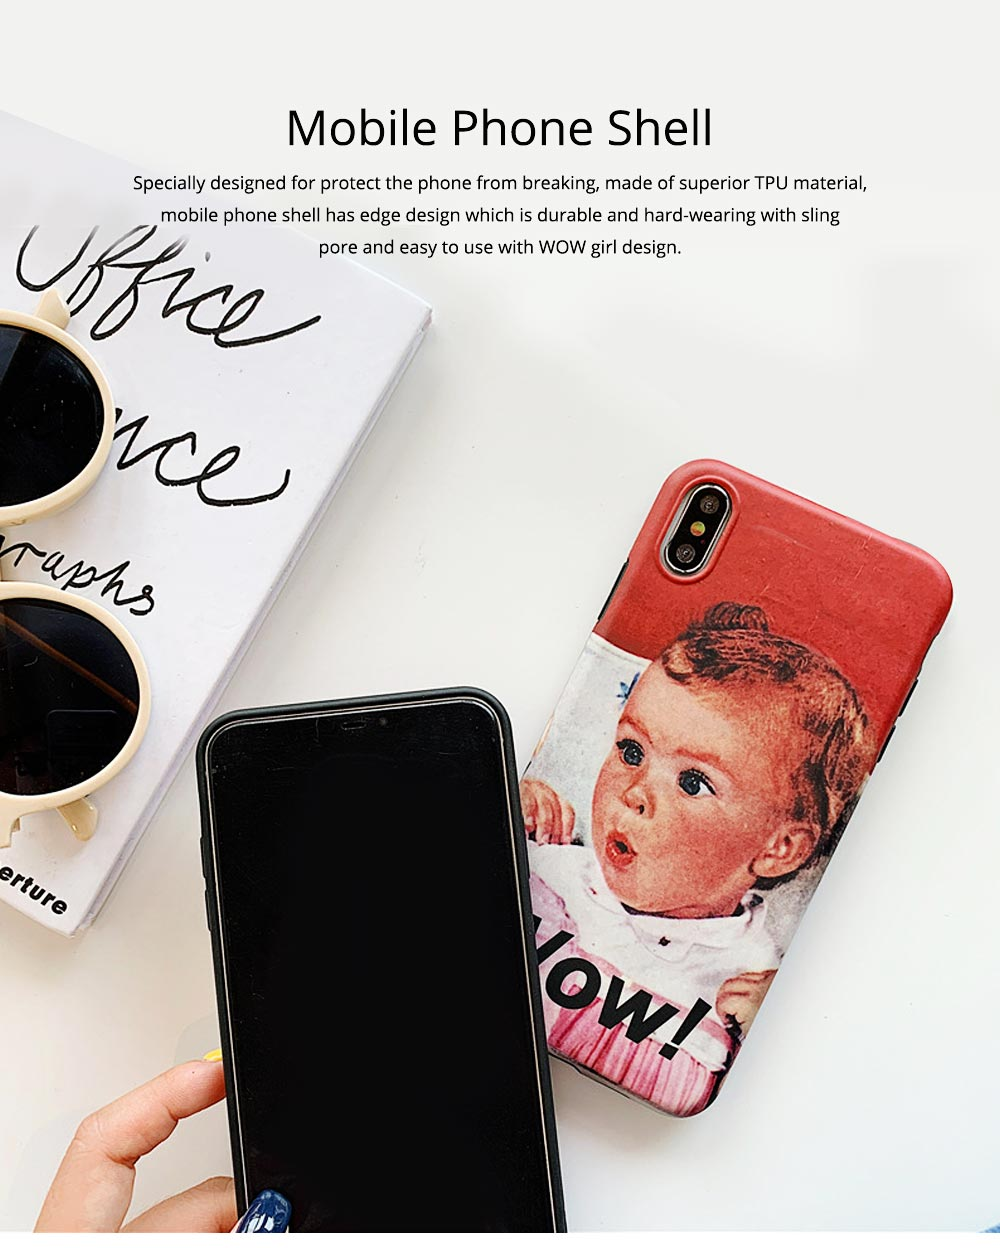 Cute Vintage WOW Girl Phone Shell for iPhone 6/6s, 6p/6sp, 7p/8p, X/XS, XR 0